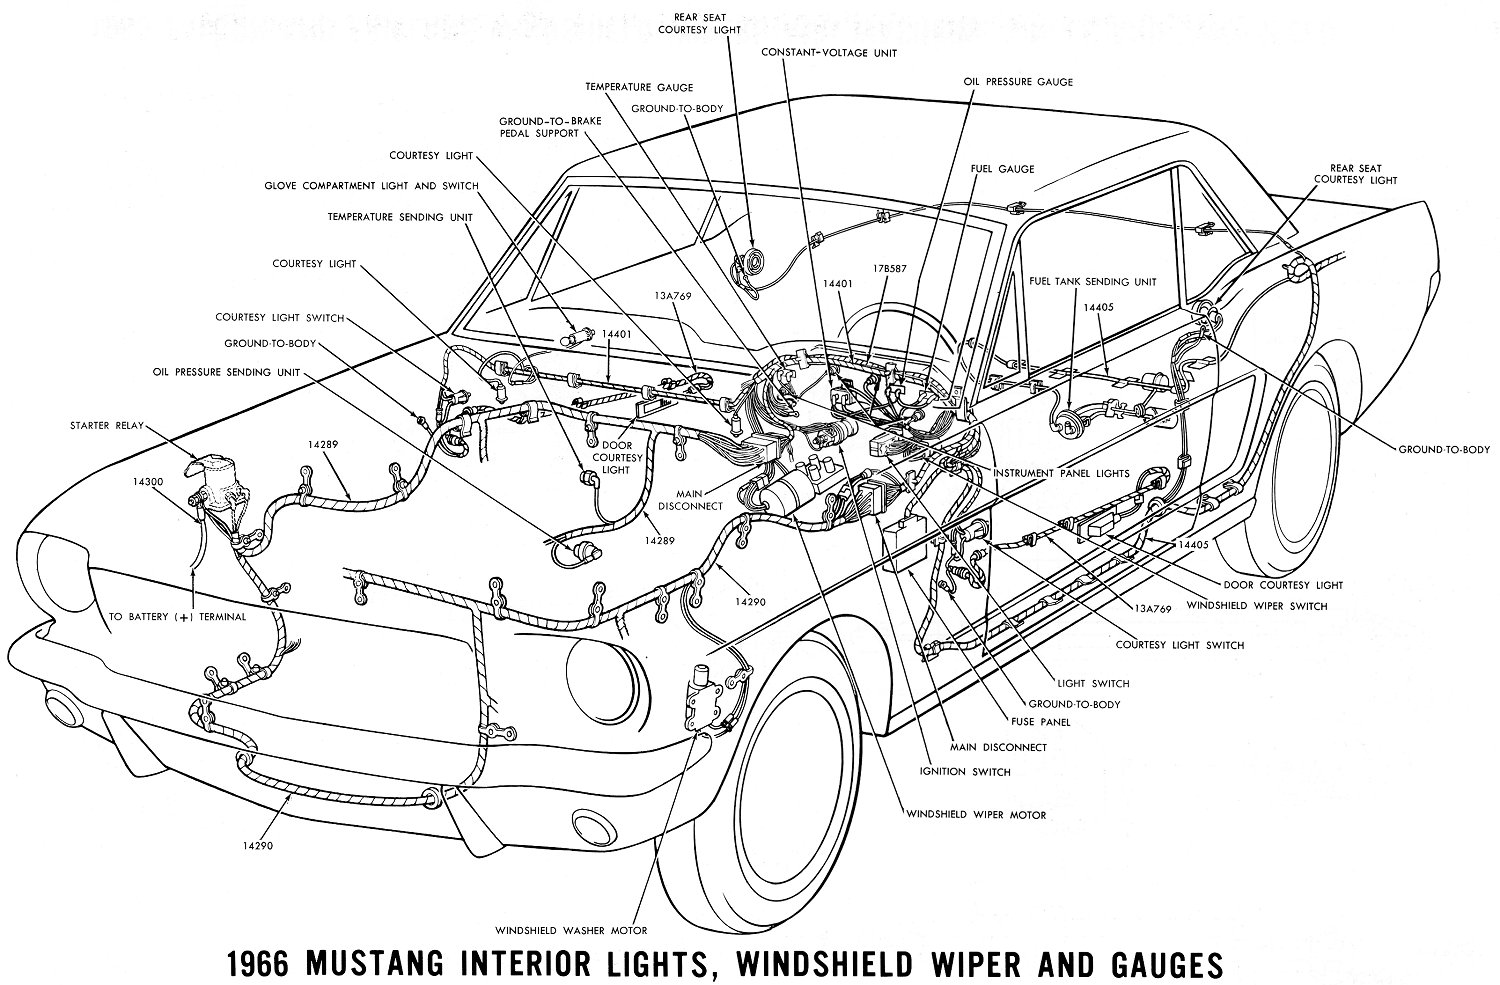 66inter 1966 mustang wiring diagrams average joe restoration 1966 mustang voltage regulator wiring diagram at gsmx.co